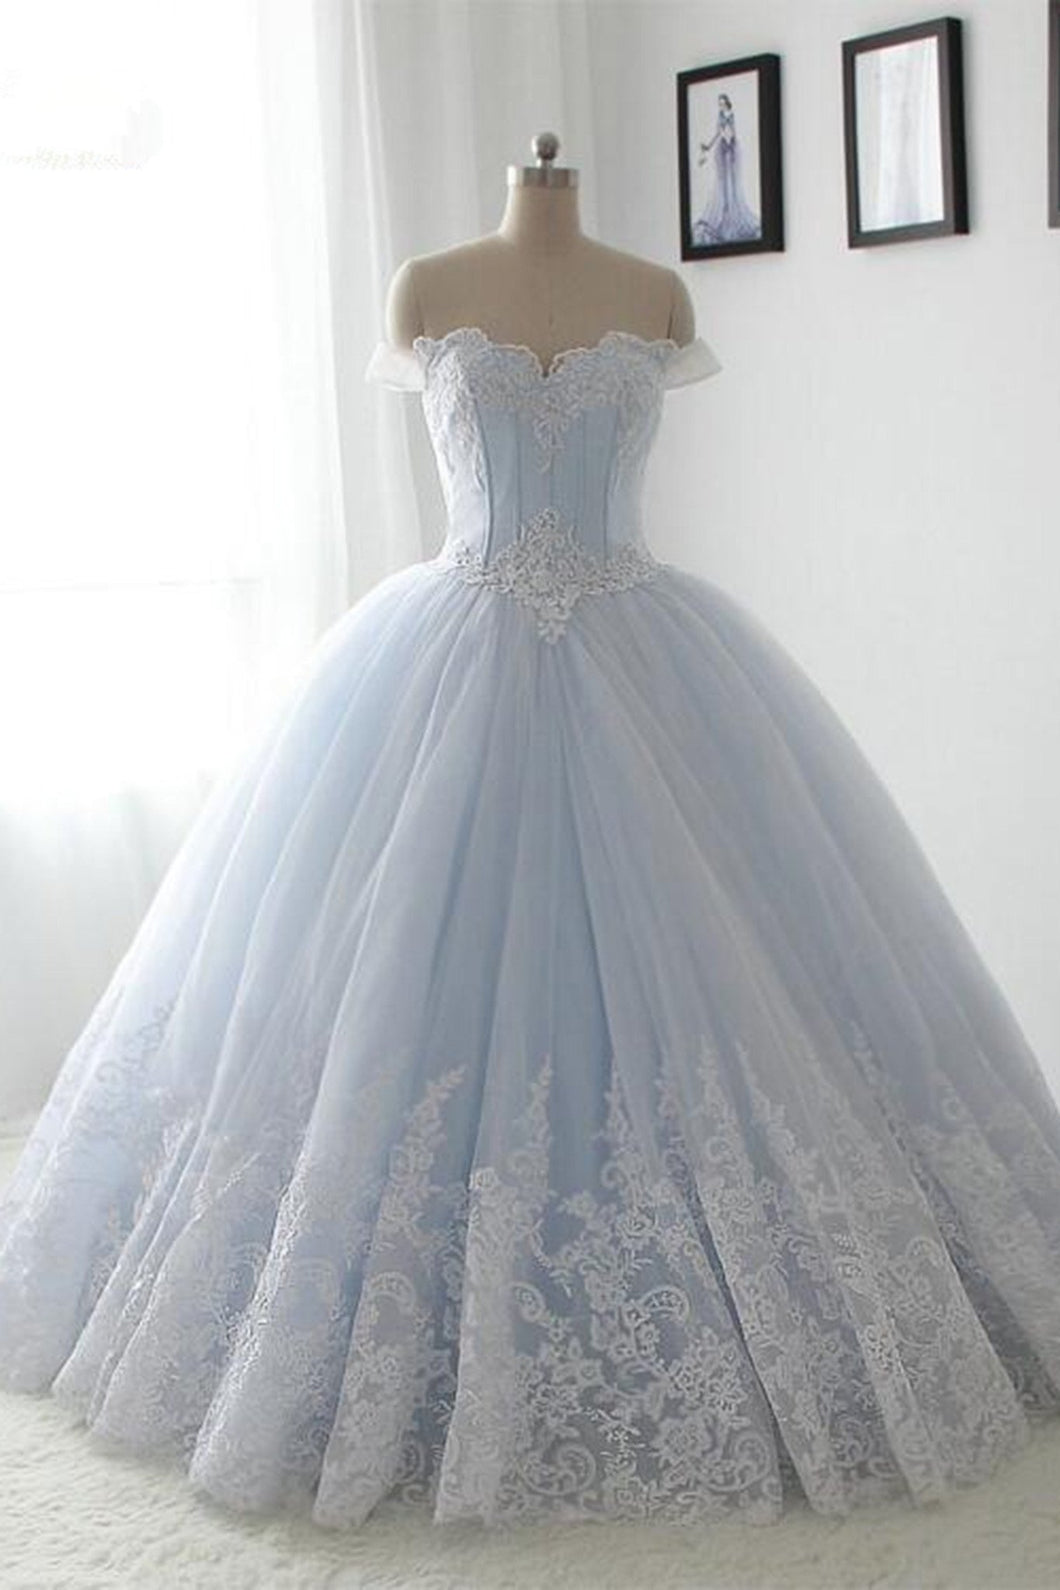 2018 evening gowns - Light blue organza lace sweetheart A-line long dress,princess ball gown dress